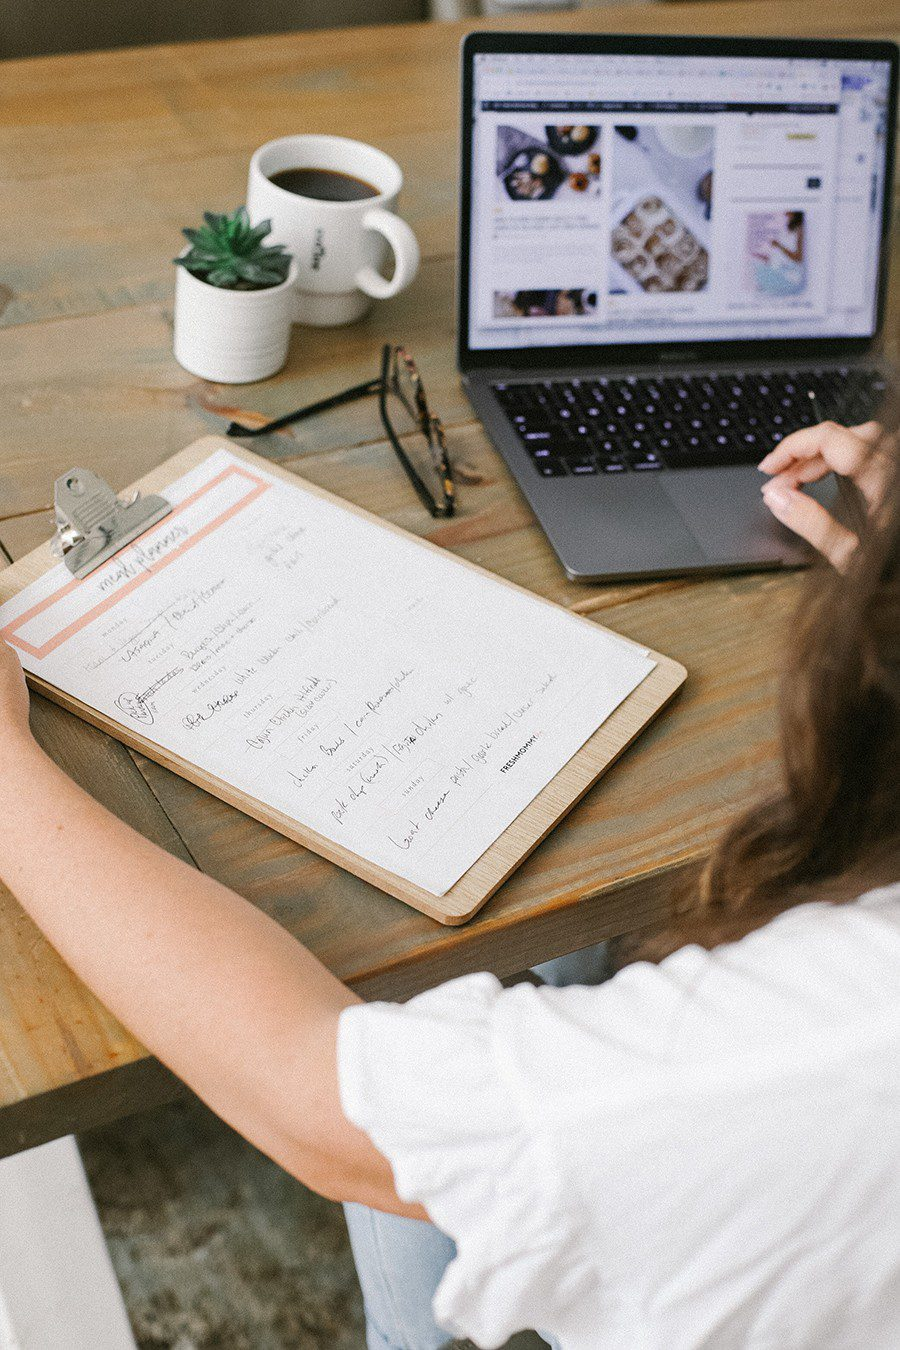 Family Meal Planning Tips to Save Money and Free Printable | Family Meal Planning by popular Florida lifestyle blog, Fresh Mommy Blog: image of a woman looking at a meal planner chart on a clipboard while sitting at a table containing a cup of coffee, glasses, a succulent plant and an open Mac laptop.